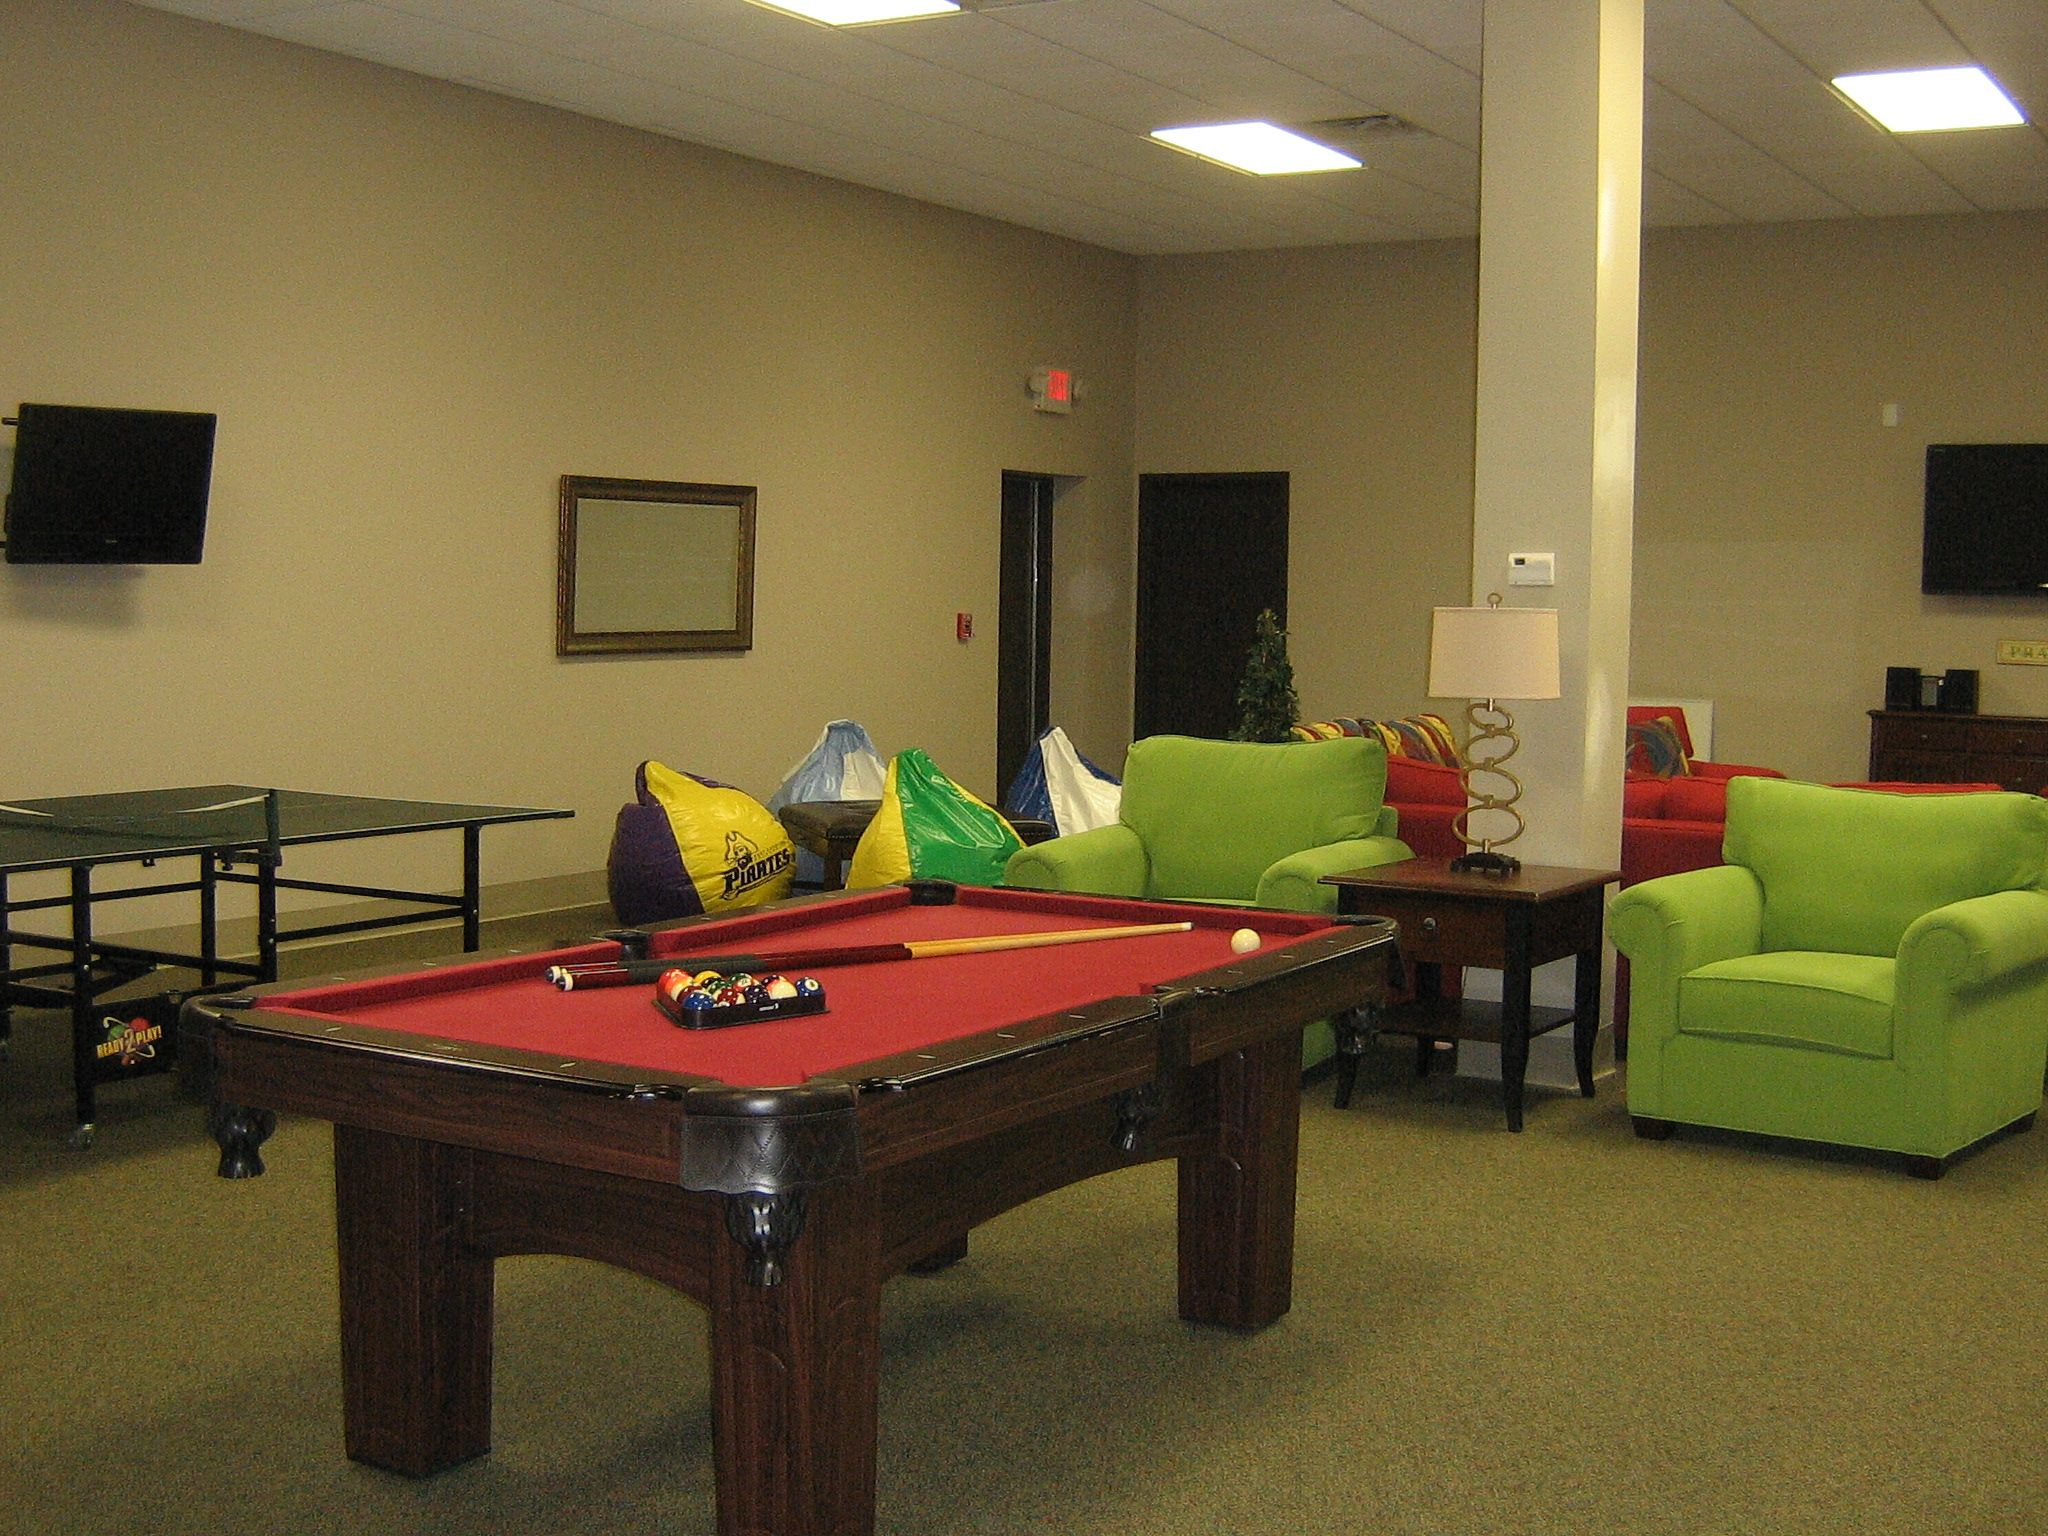 Youth Group Youth Room Game Room Decor Pool Table Room